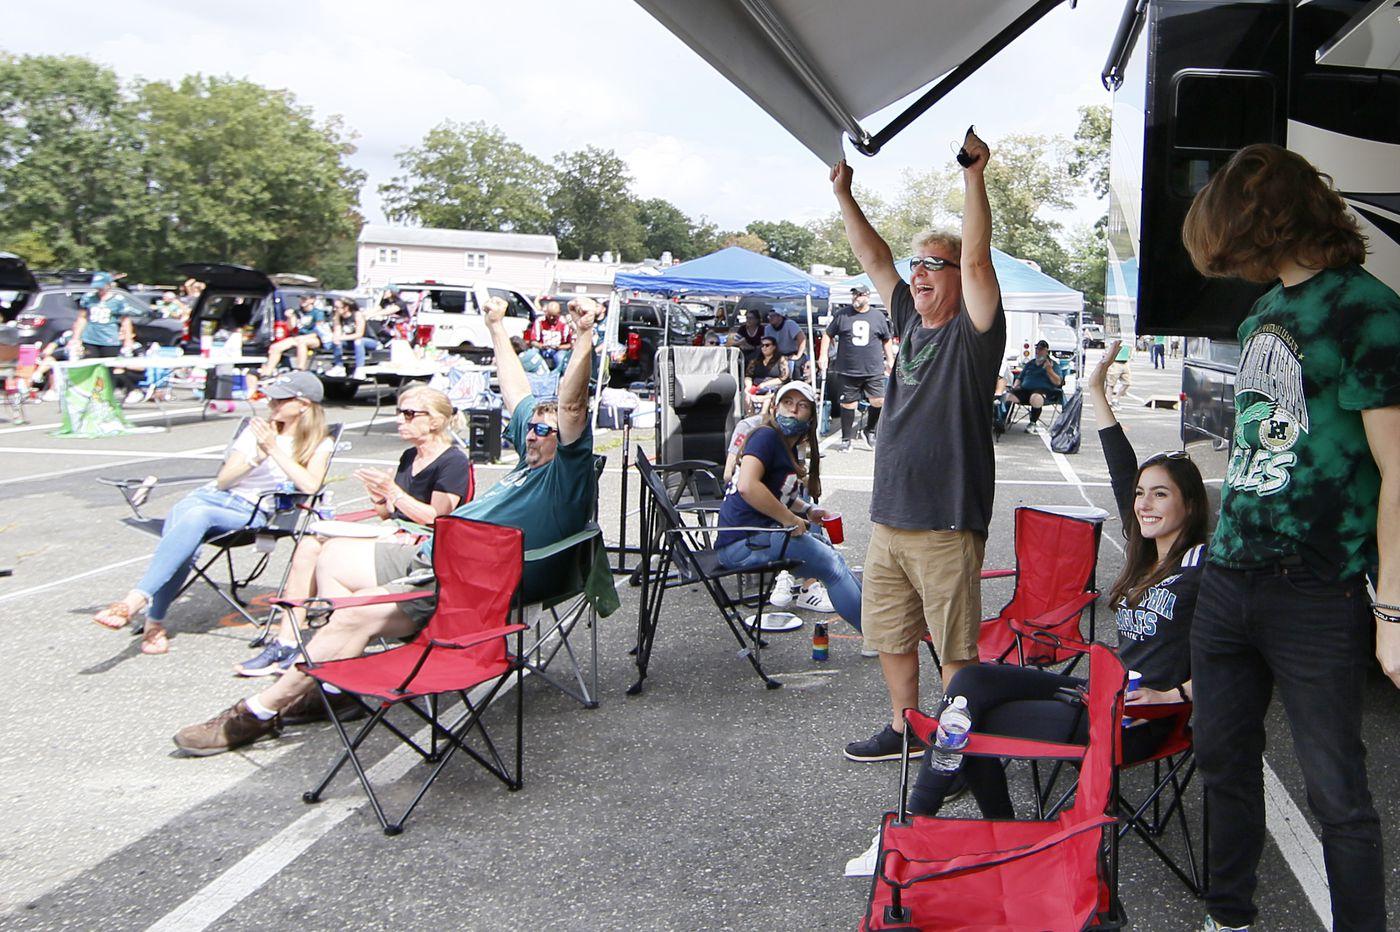 Tailgating isn't allowed at Eagles games, but these fans have come up with some alternatives